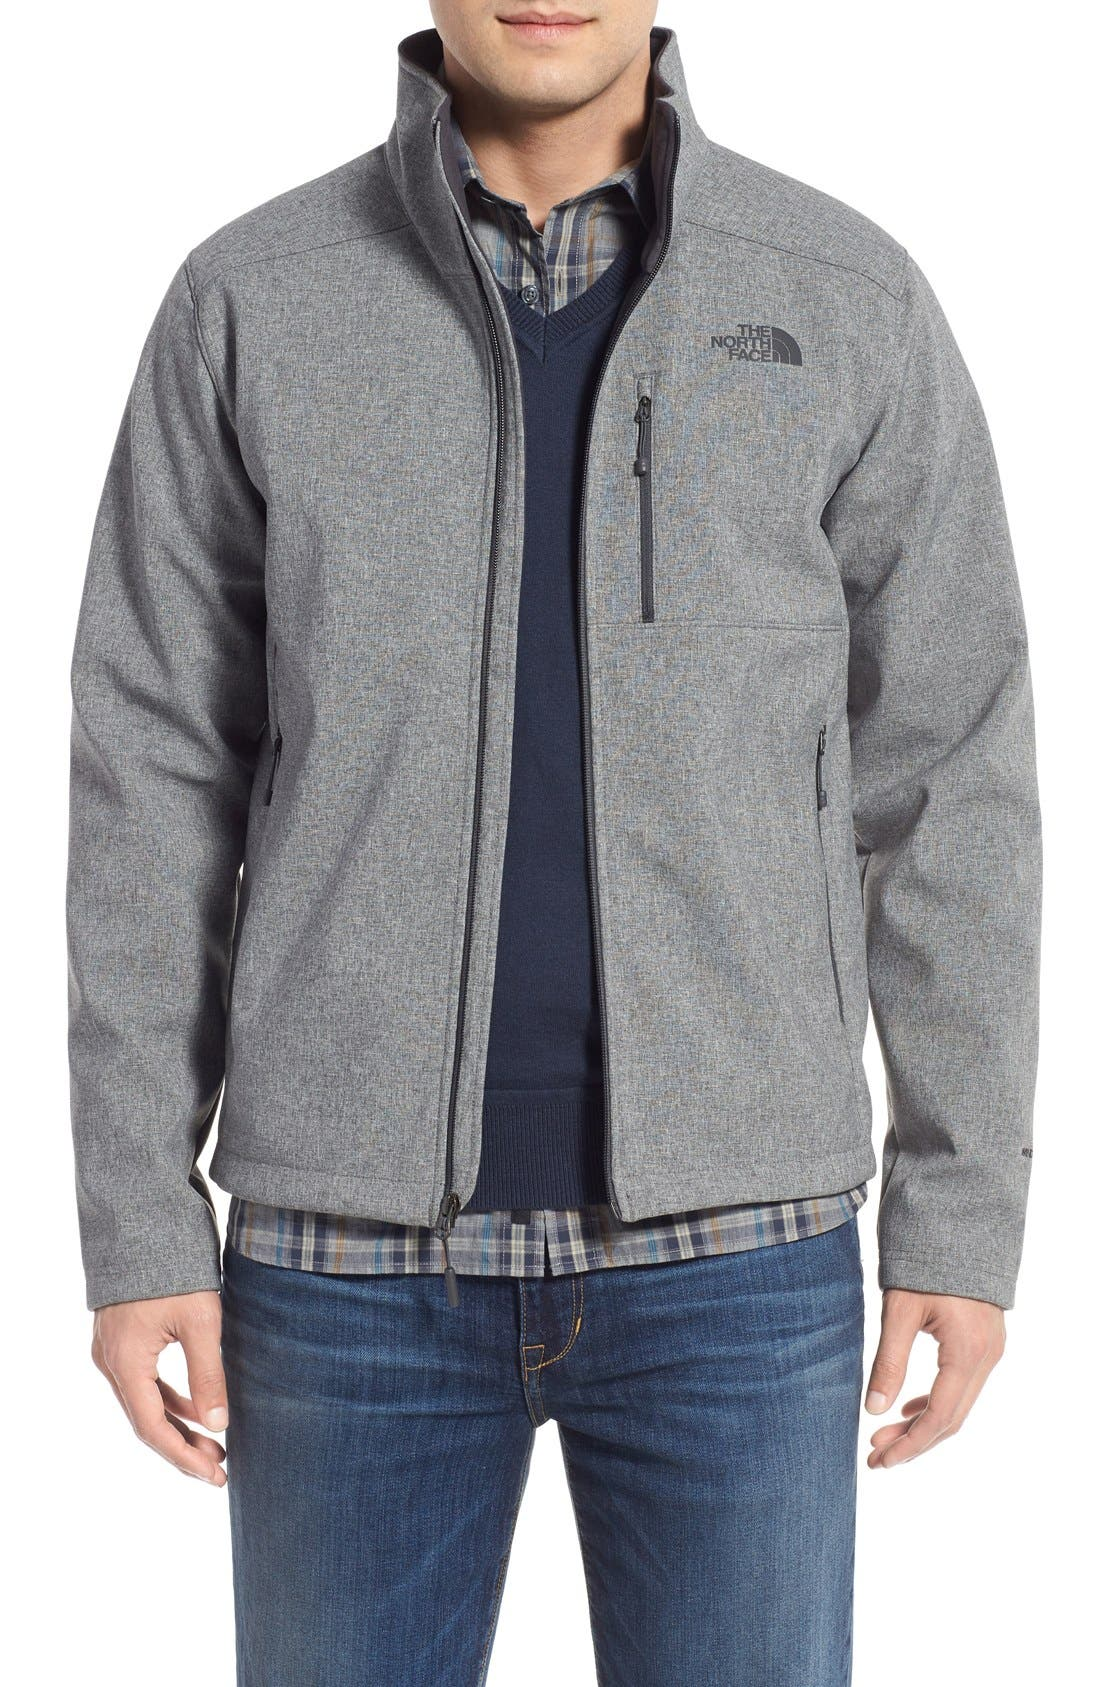 'Apex Bionic 2' Windproof & Water Resistant Soft Shell Jacket,                             Main thumbnail 1, color,                             Tnf Medium Grey Heather